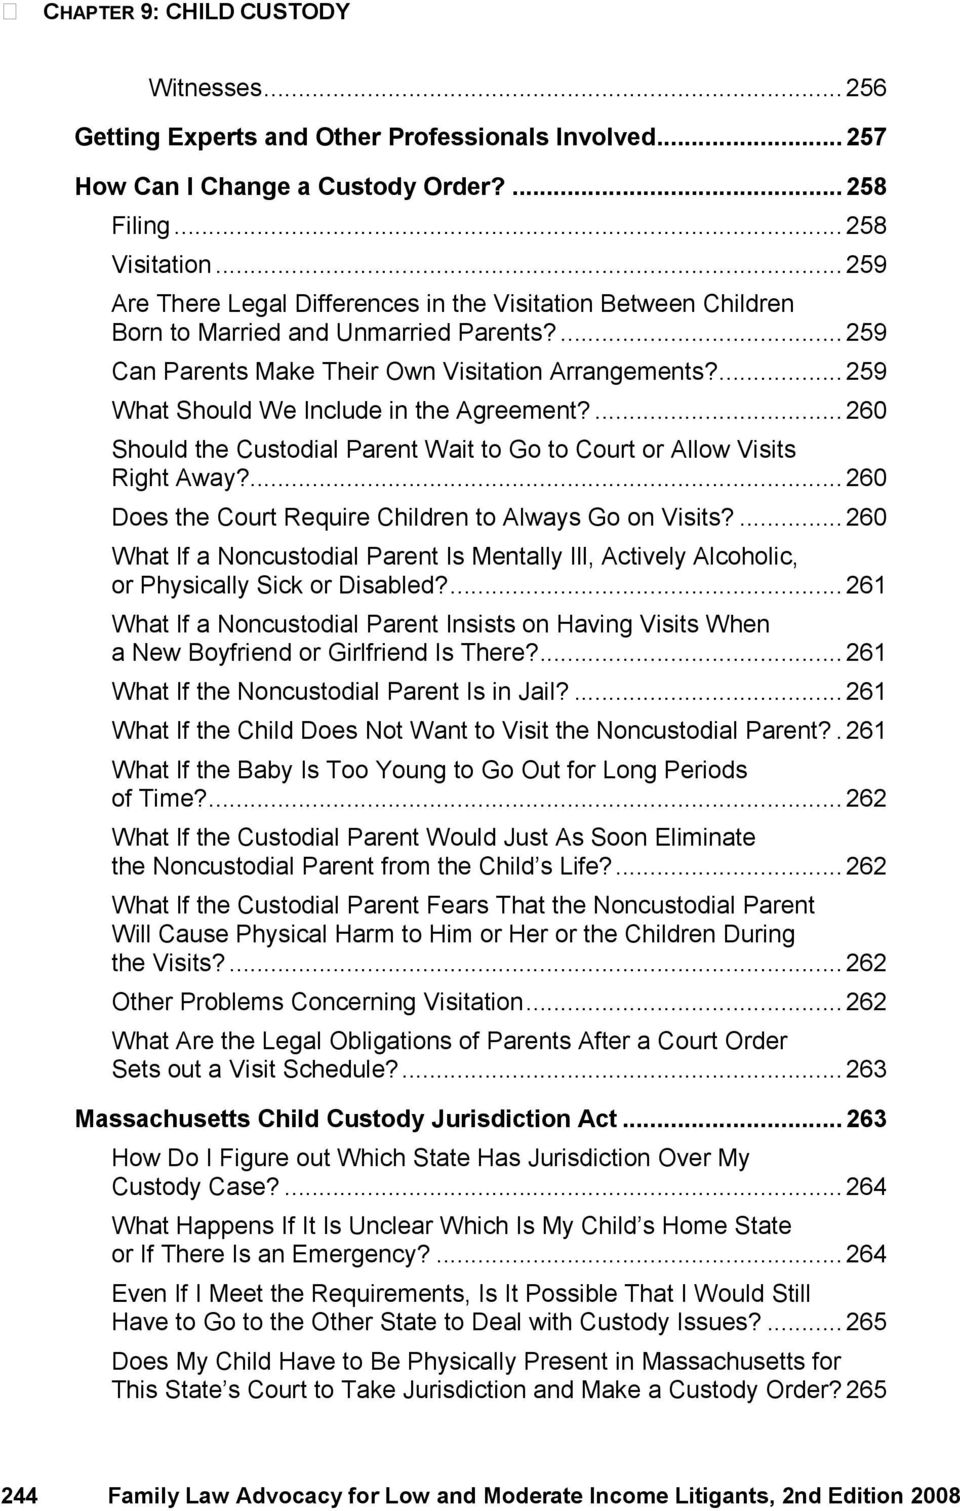 ...259 What Should We Include in the Agreement?... 260 Should the Custodial Parent Wait to Go to Court or Allow Visits Right Away?... 260 Does the Court Require Children to Always Go on Visits?